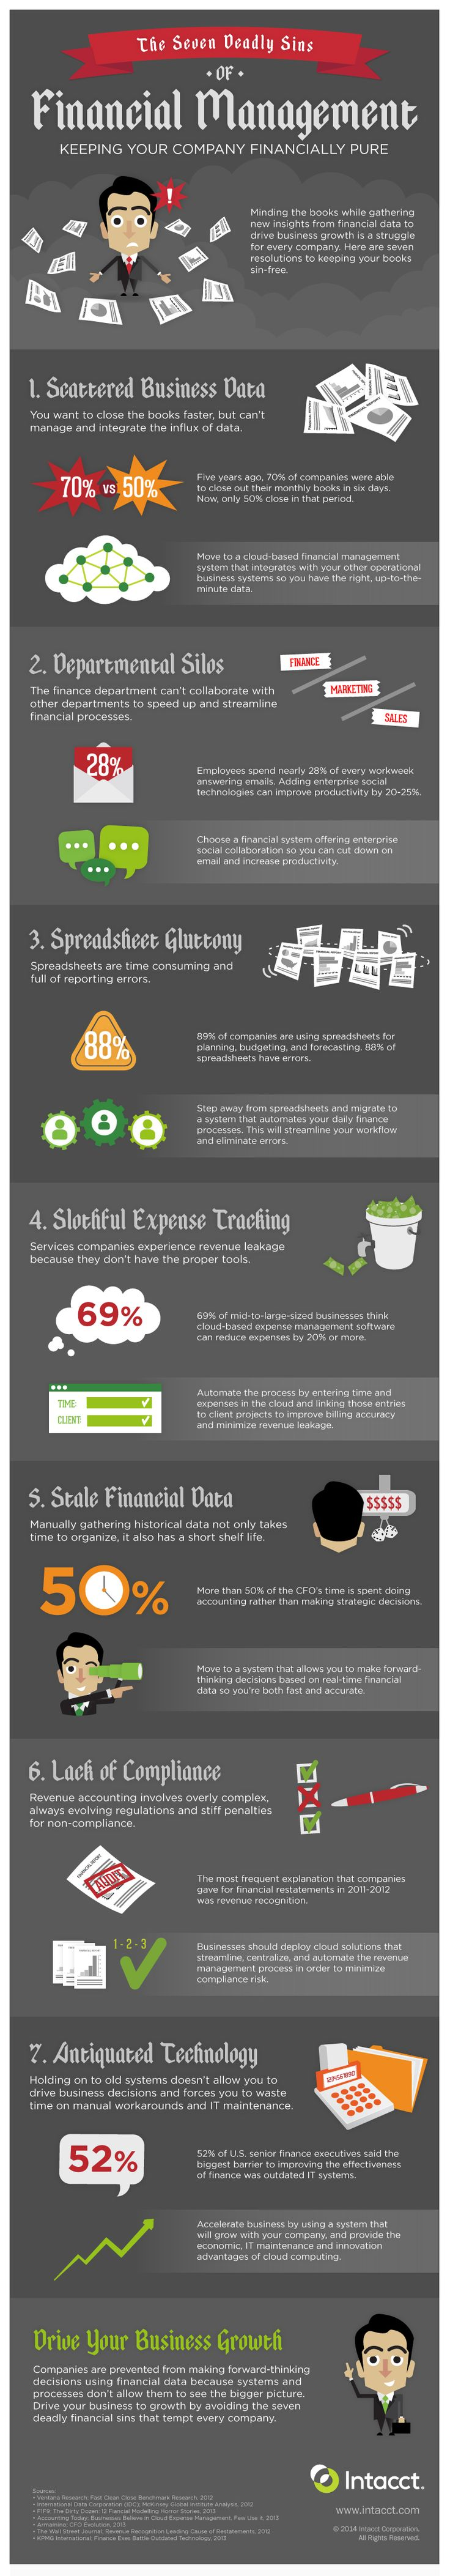 Intacct Seven Sins of Financial Management. Please visit my website #TrushaDesai.com